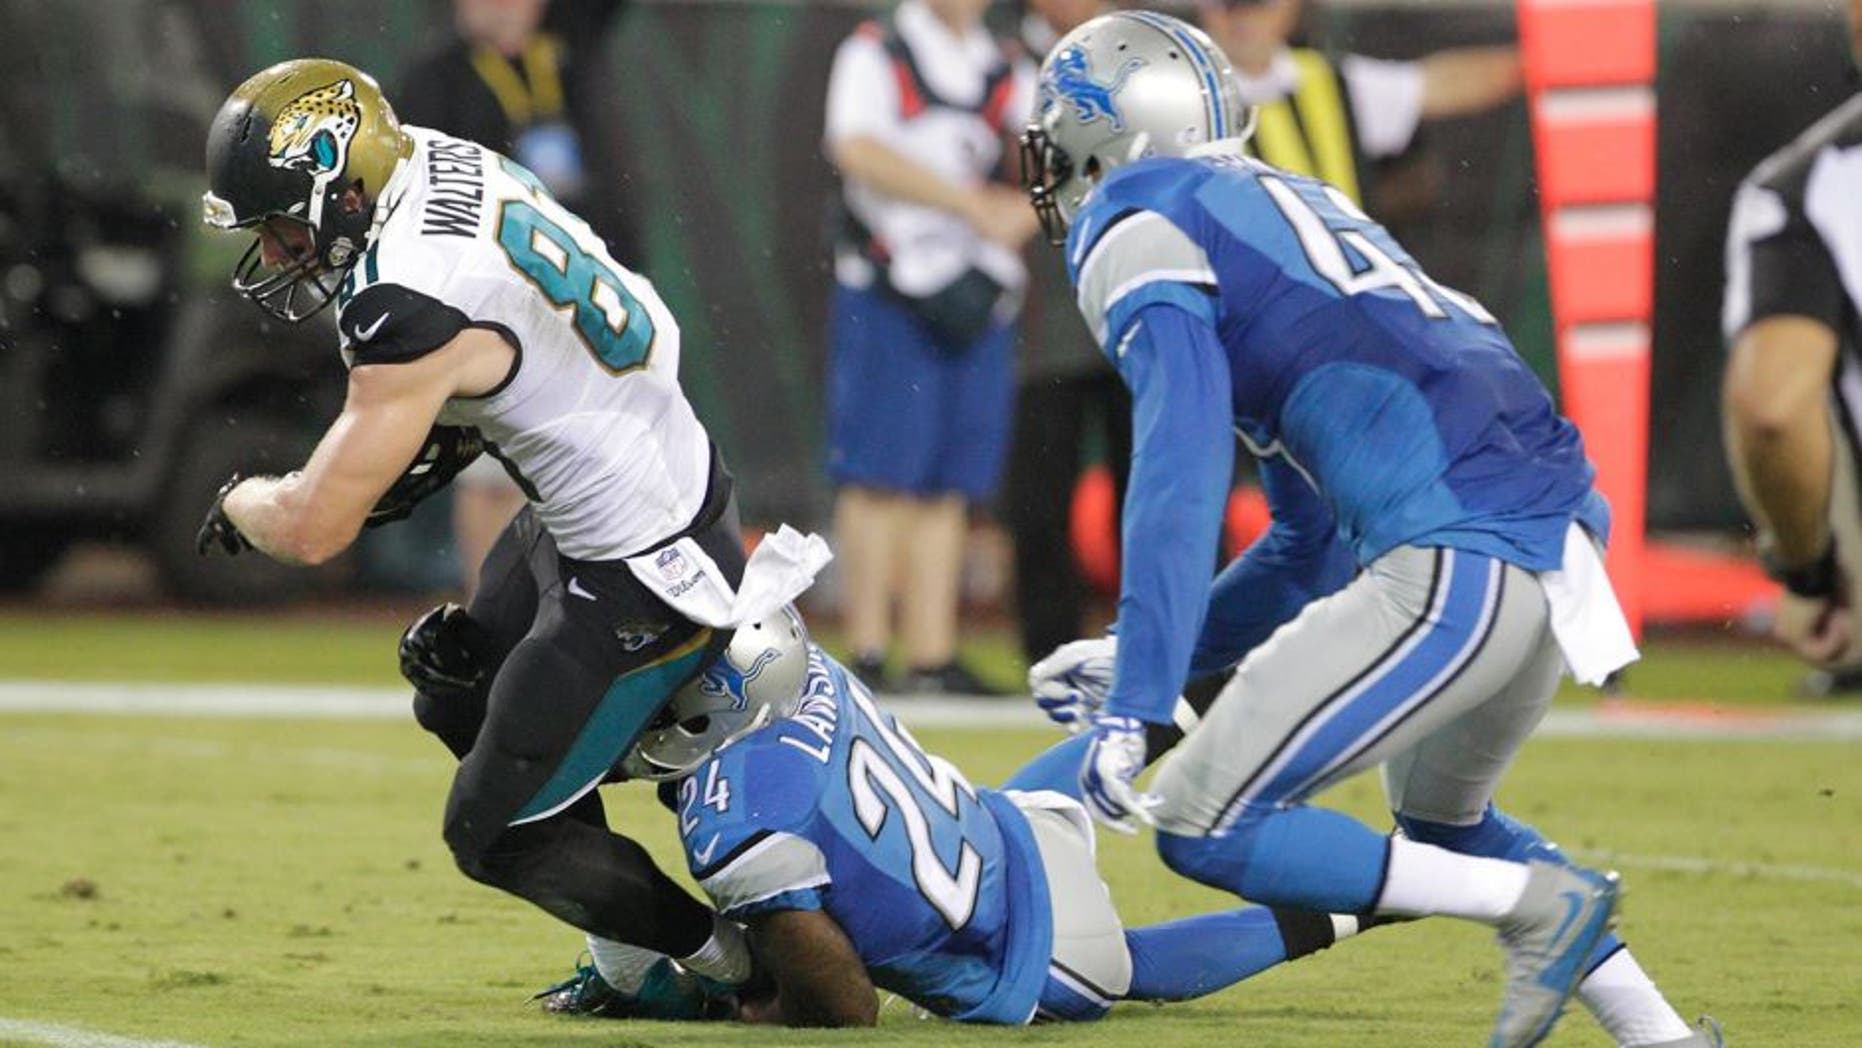 Aug 28, 2015; Jacksonville, FL, USA; Detroit Lions cornerback Nevin Lawson (24) cannot stop Jacksonville Jaguars wide receiver Bryan Walters (81) from scoring a touchdown during the second half of an NFL preseason football game at EverBank Field. The Lions won 22-17. Mandatory Credit: Reinhold Matay-USA TODAY Sports